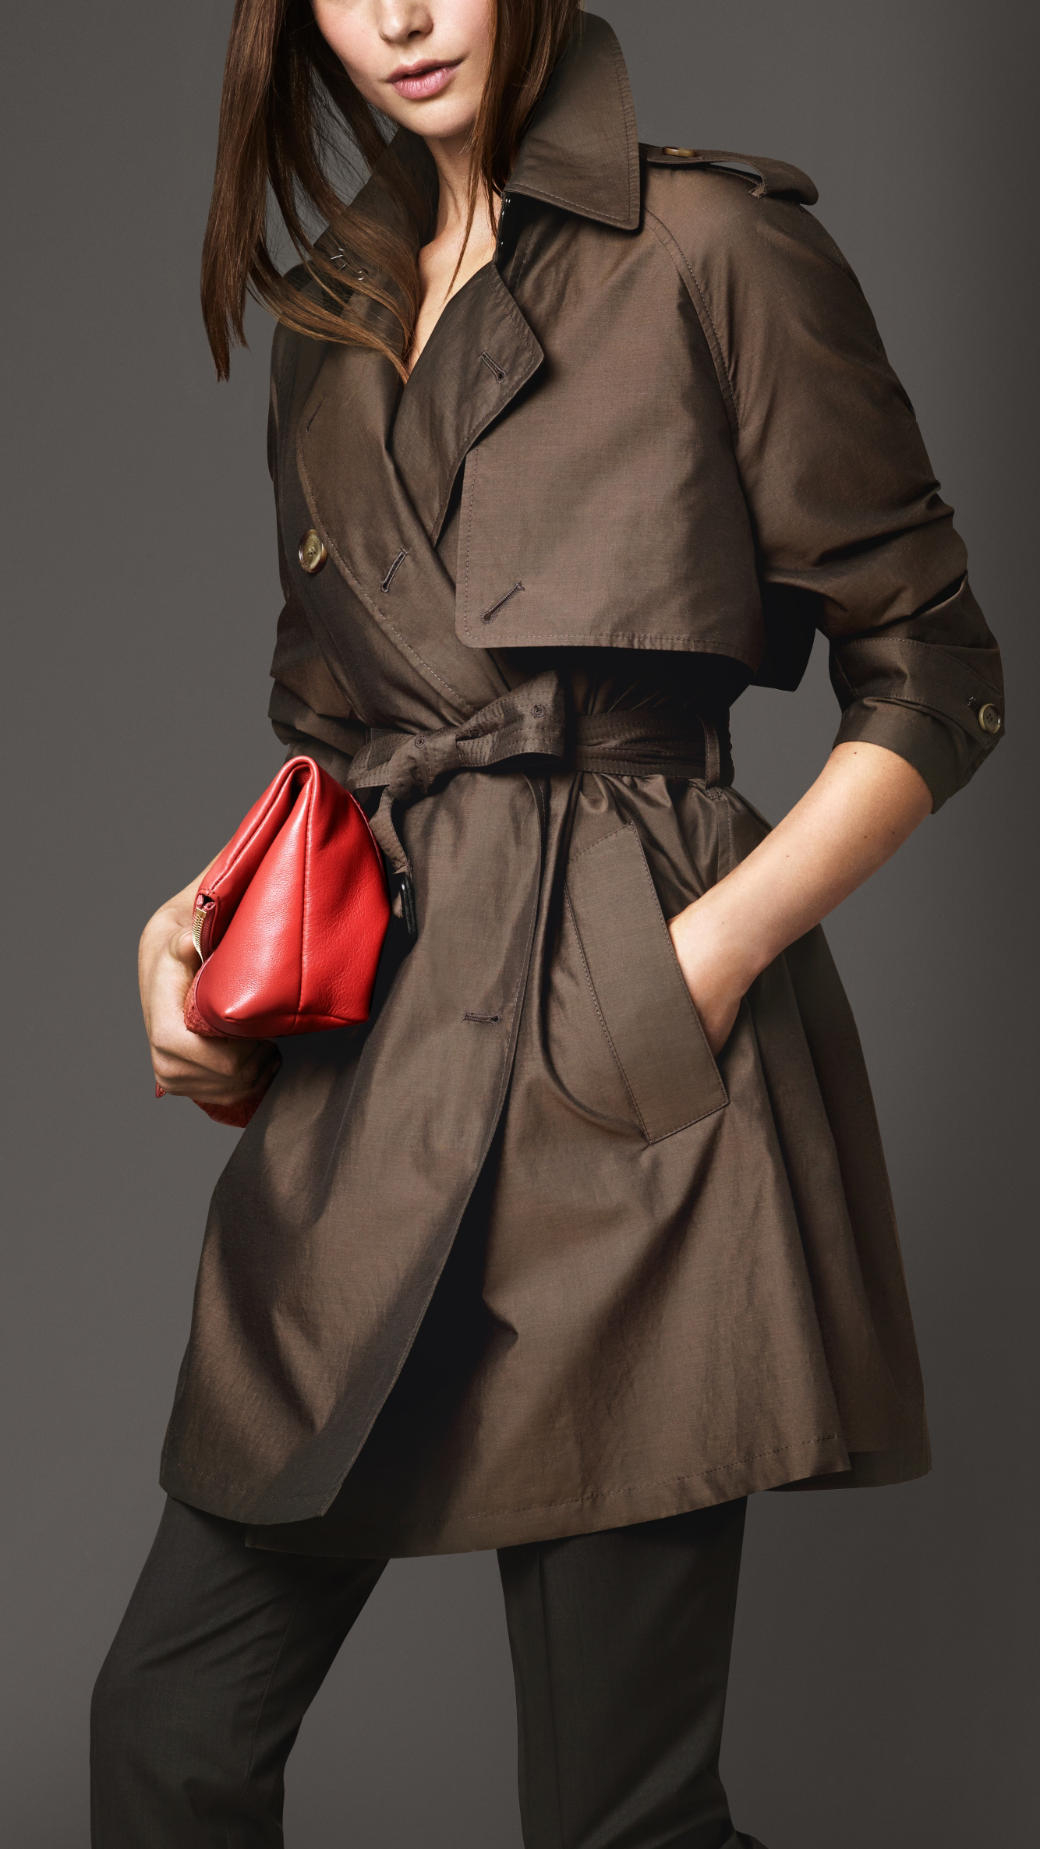 fa4e2575537 Burberry Midlength Oversize Detail Silk Cotton Trench Coat in Brown ...